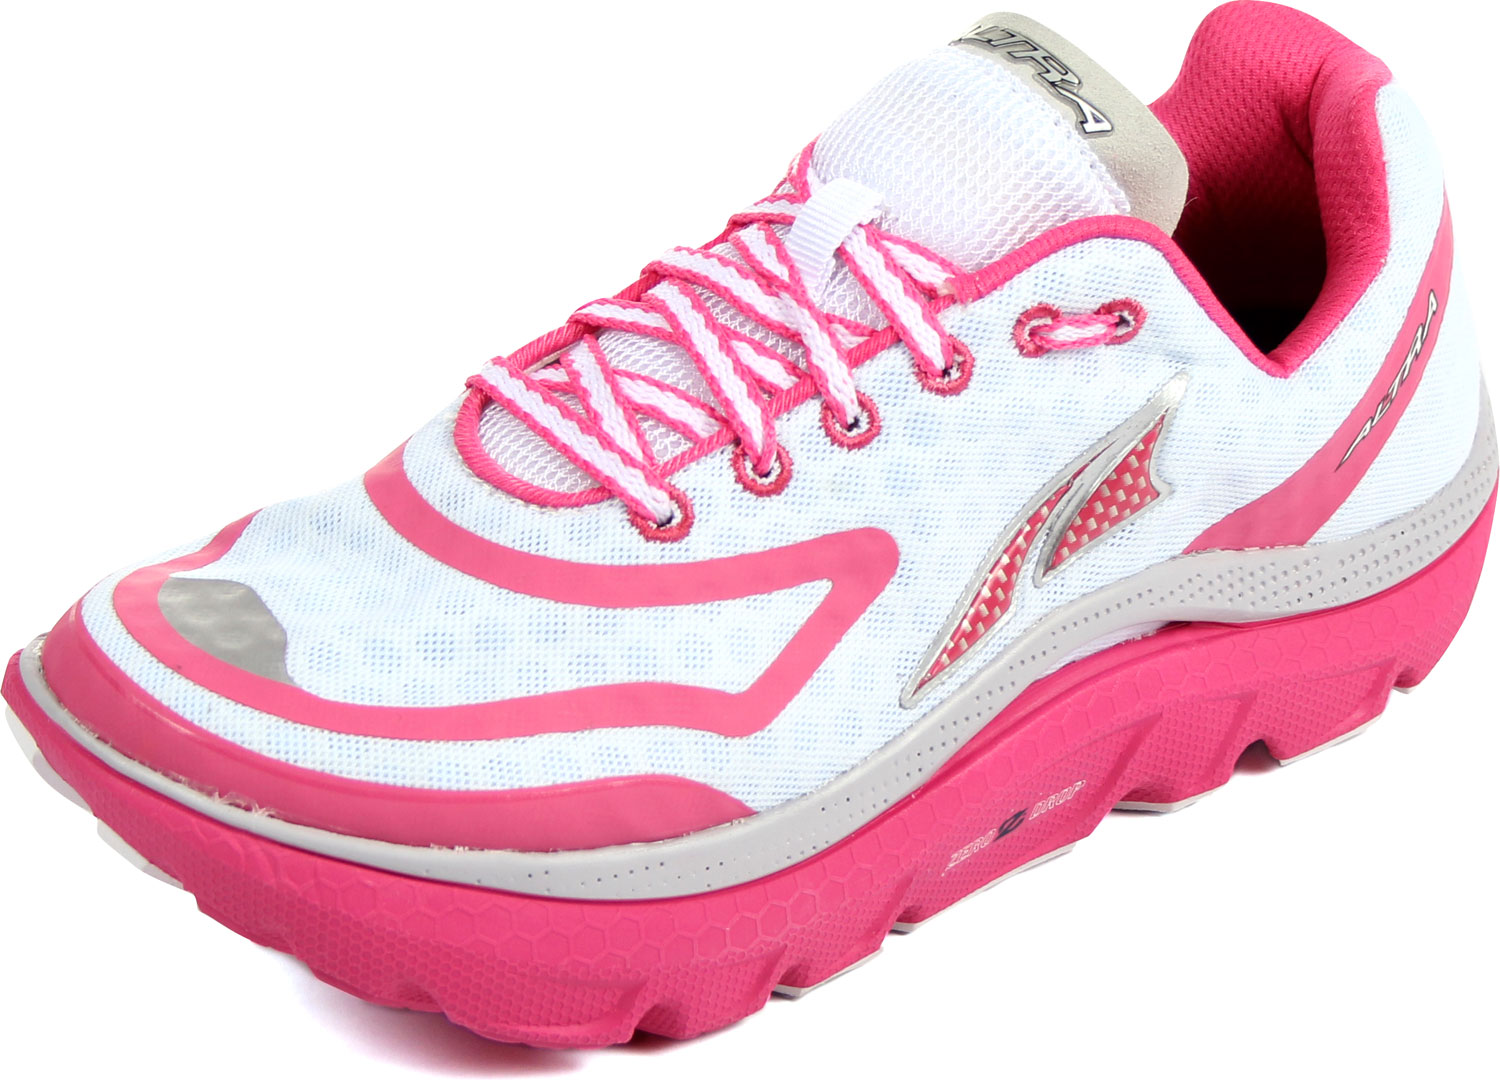 Image of Altra - Womens Paradigm Running Shoes